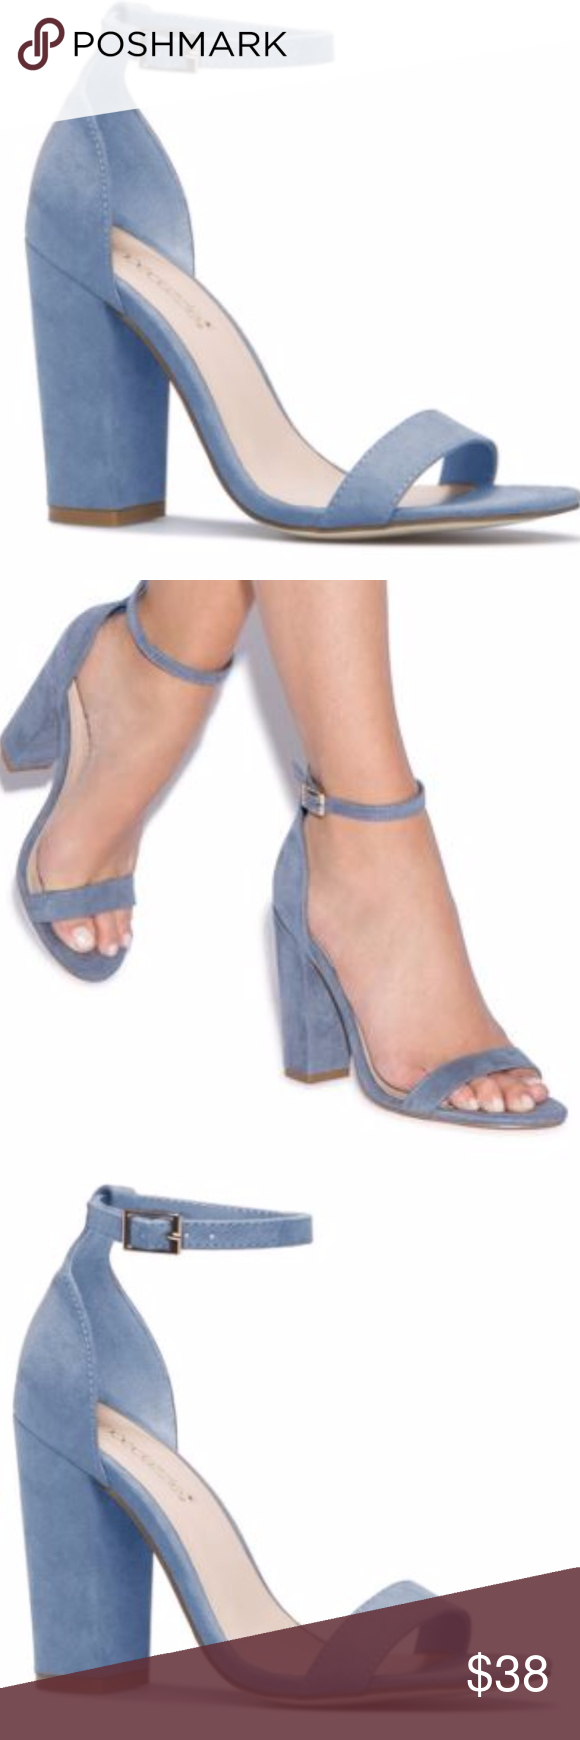 ad181663d8e Dusty Blue BLOCK HEEL - Bran New SIZE: 9 MATERIAL: Faux-suede ...